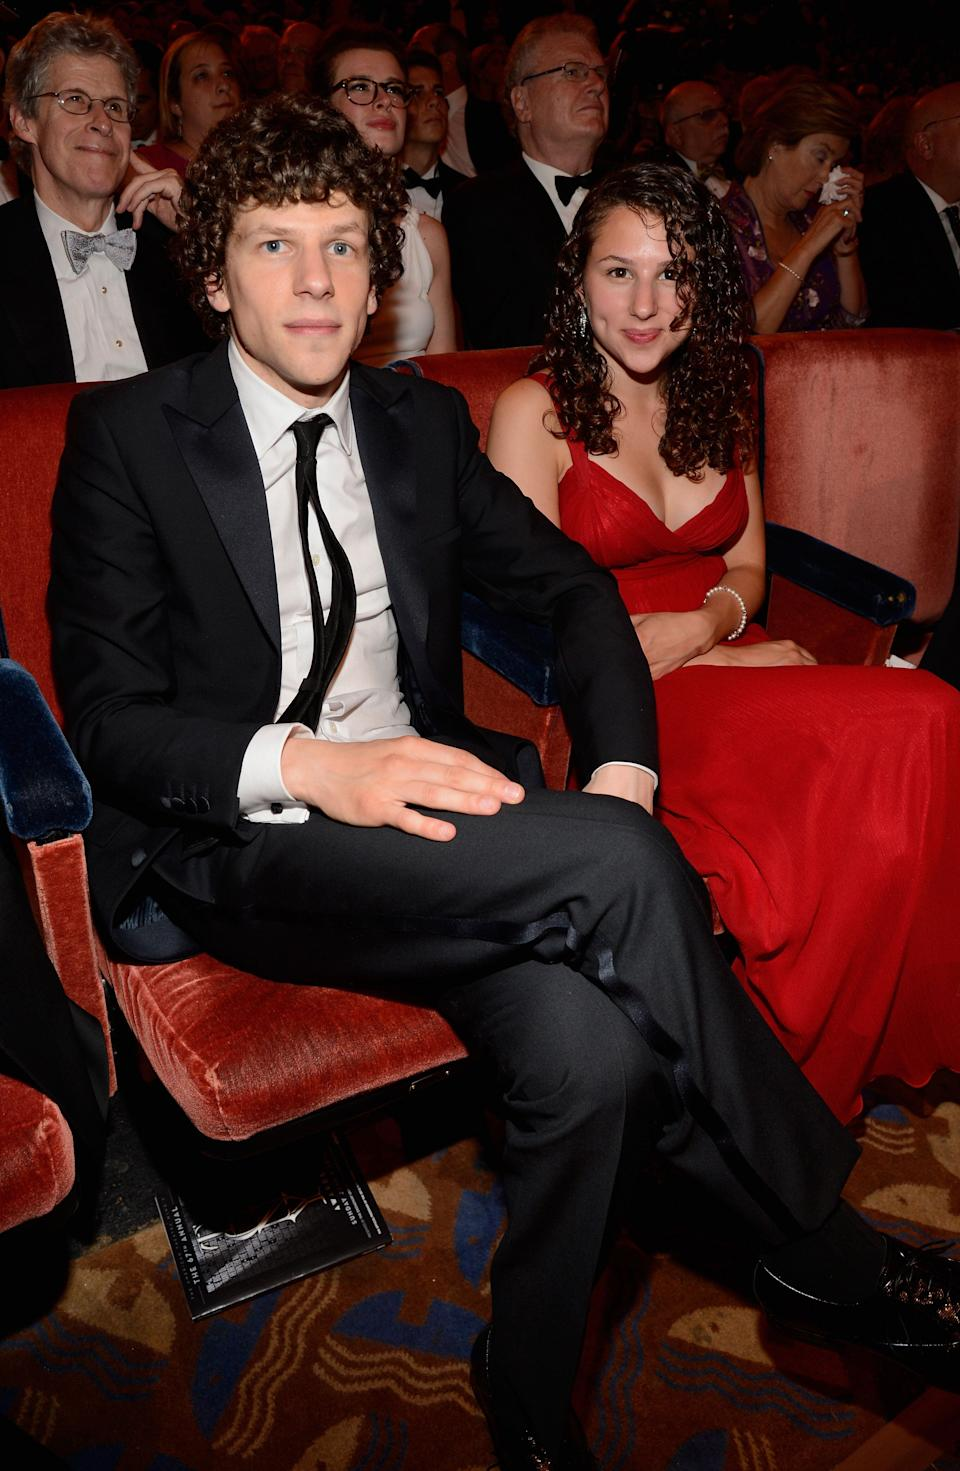 """Social Network"" actor <a href=""https://www.huffpost.com/topic/jesse-eisenberg"" target=""_blank"" rel=""noopener noreferrer"">Jesse Eisenberg's</a> little sister is Hallie Eisenberg, best known for portraying ""The Pepsi Girl"" in a series of Pepsi <a href=""https://www.youtube.com/watch?v=VAs81k8o398"" target=""_blank"" rel=""noopener noreferrer"">commercials in the '90s.</a>"